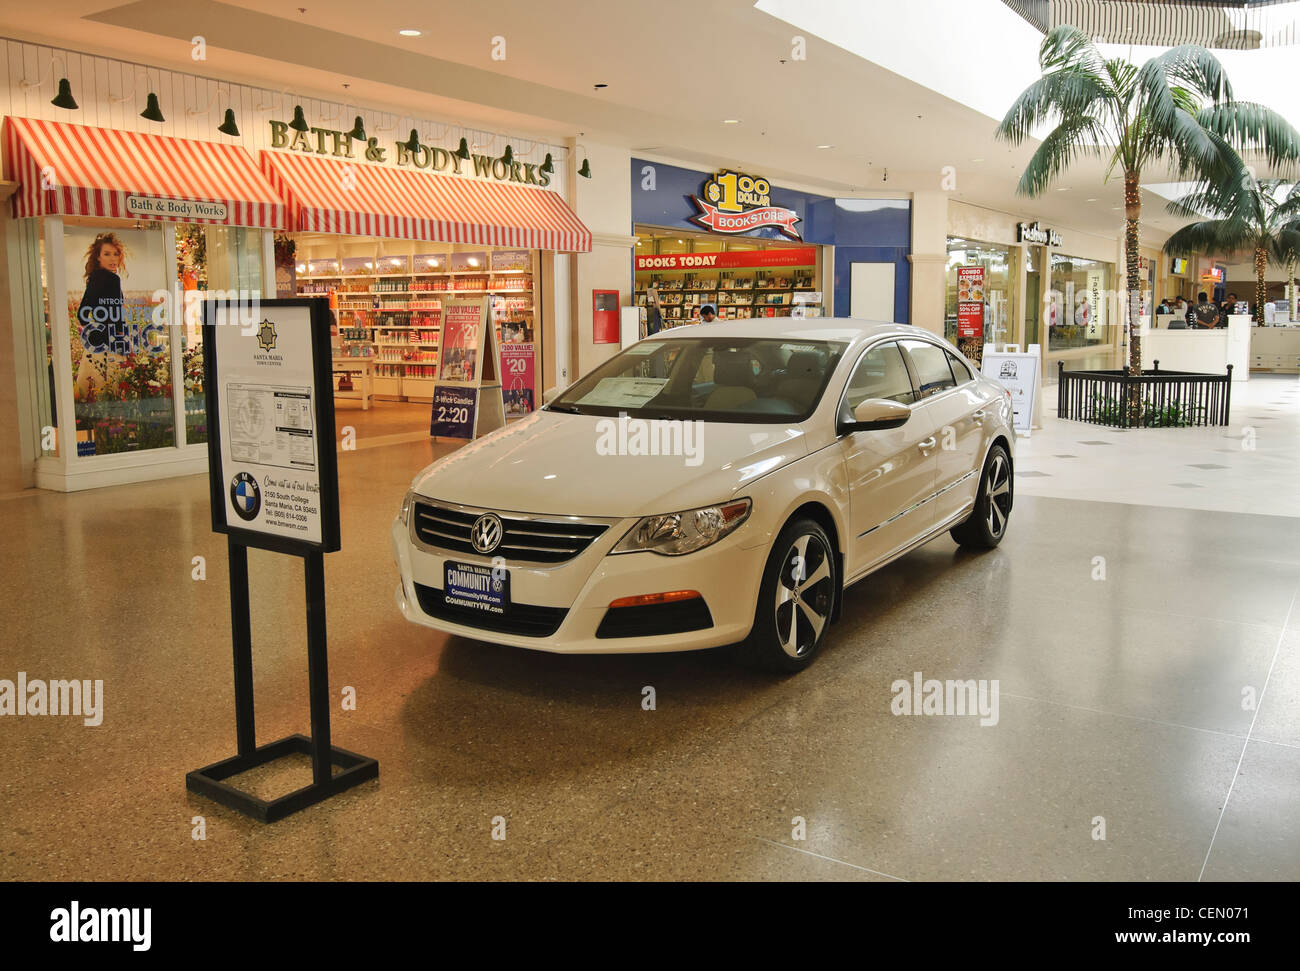 A car dealership displaying their cars in a shopping mall Stock Photo: 43487109 - Alamy